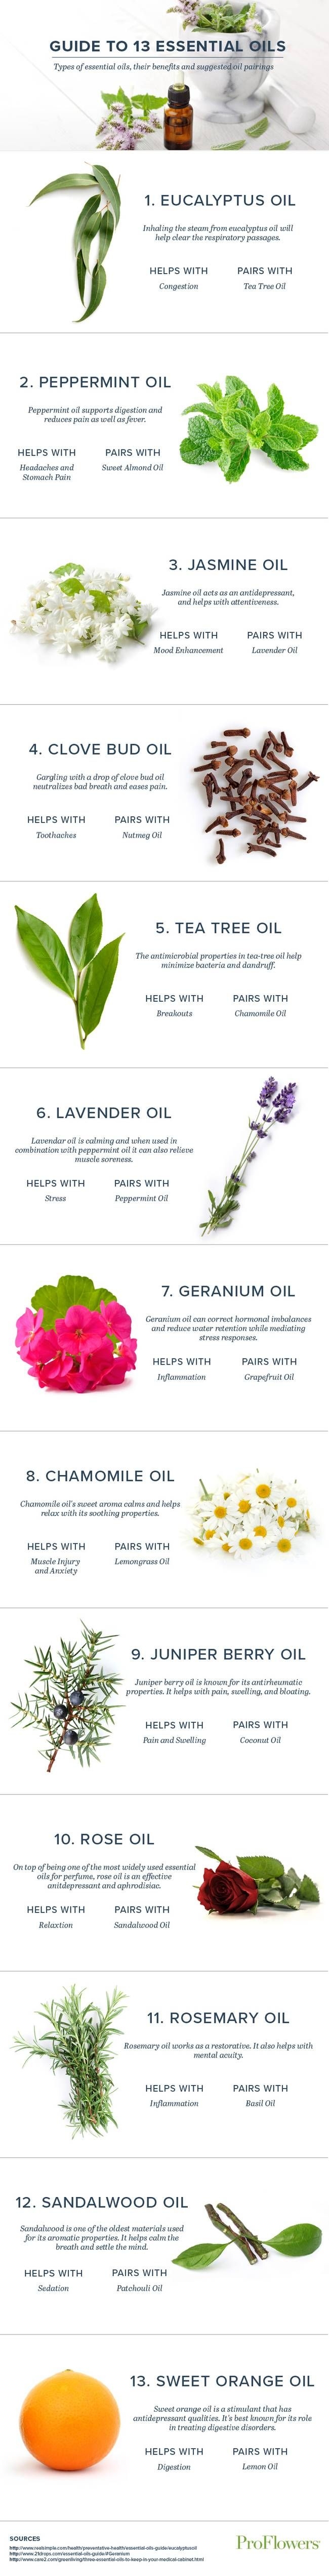 New to aromatheraphy? Check out @TreeHugger 's list of 13 essential oils, what they're good for & how to pair them.